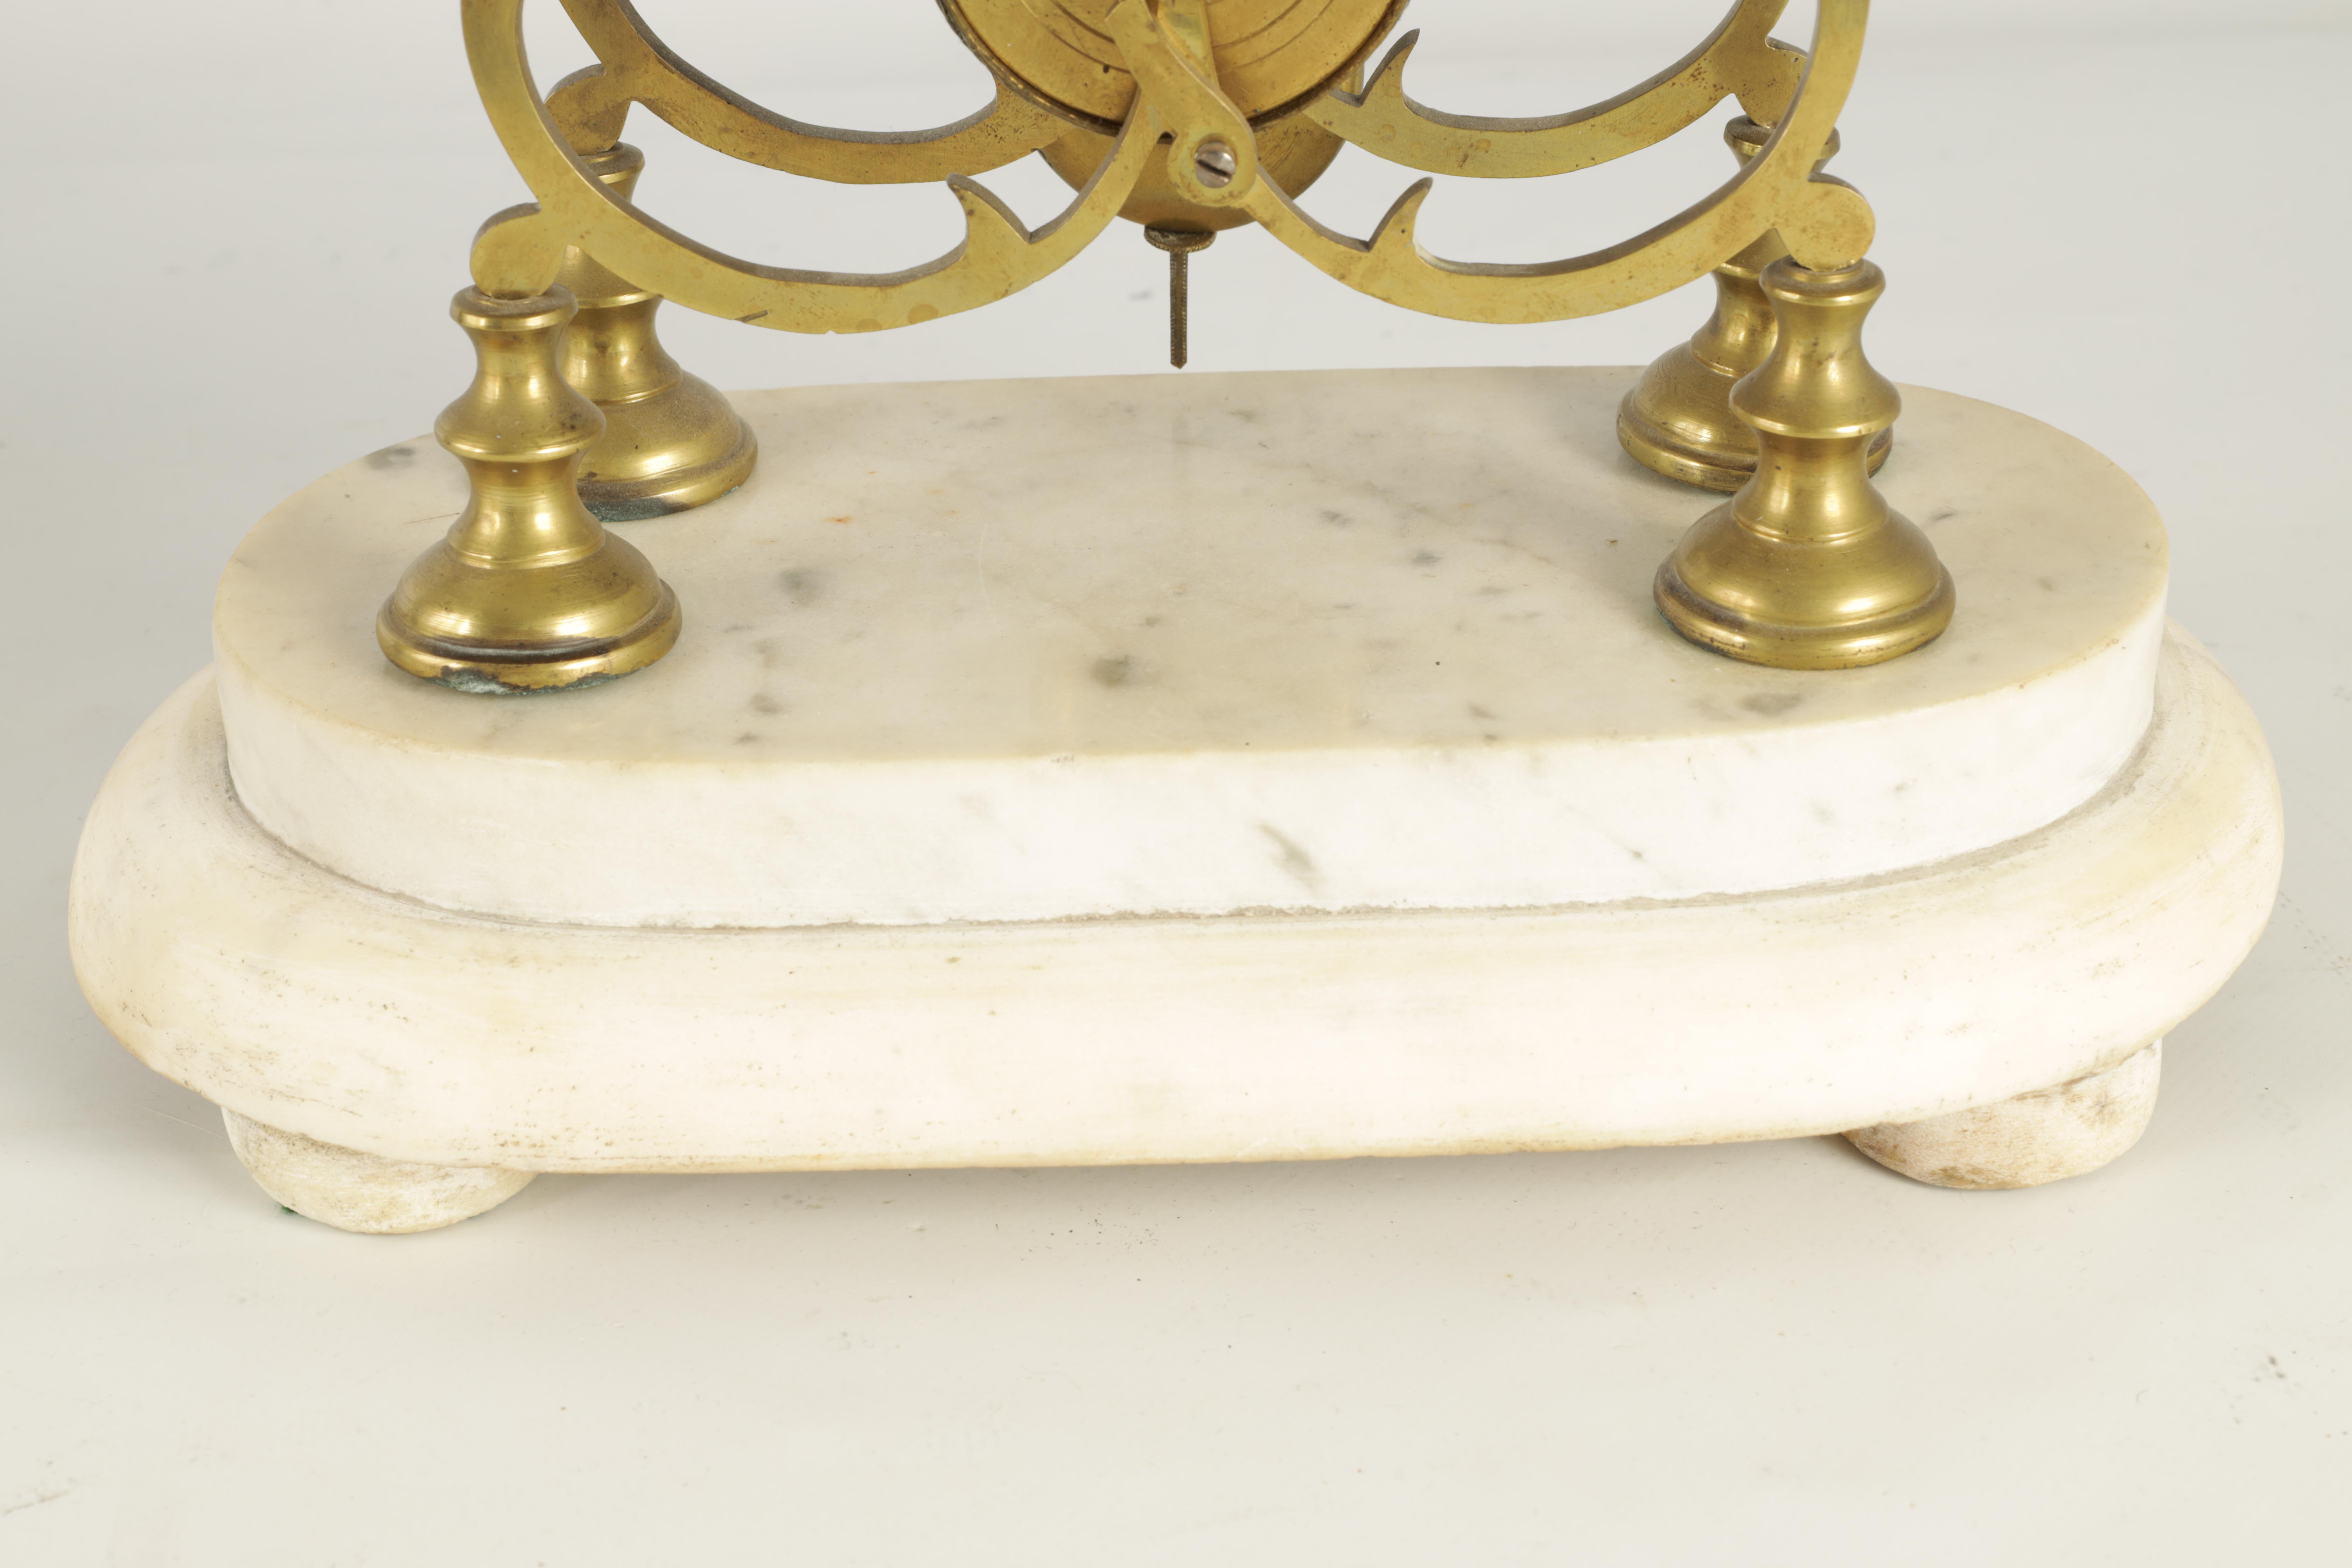 A 19TH CENTURY BRASS SINGLE FUSEE 8-DAY SKELETON CLOCK with liar shaped frame joined by four - Image 4 of 7